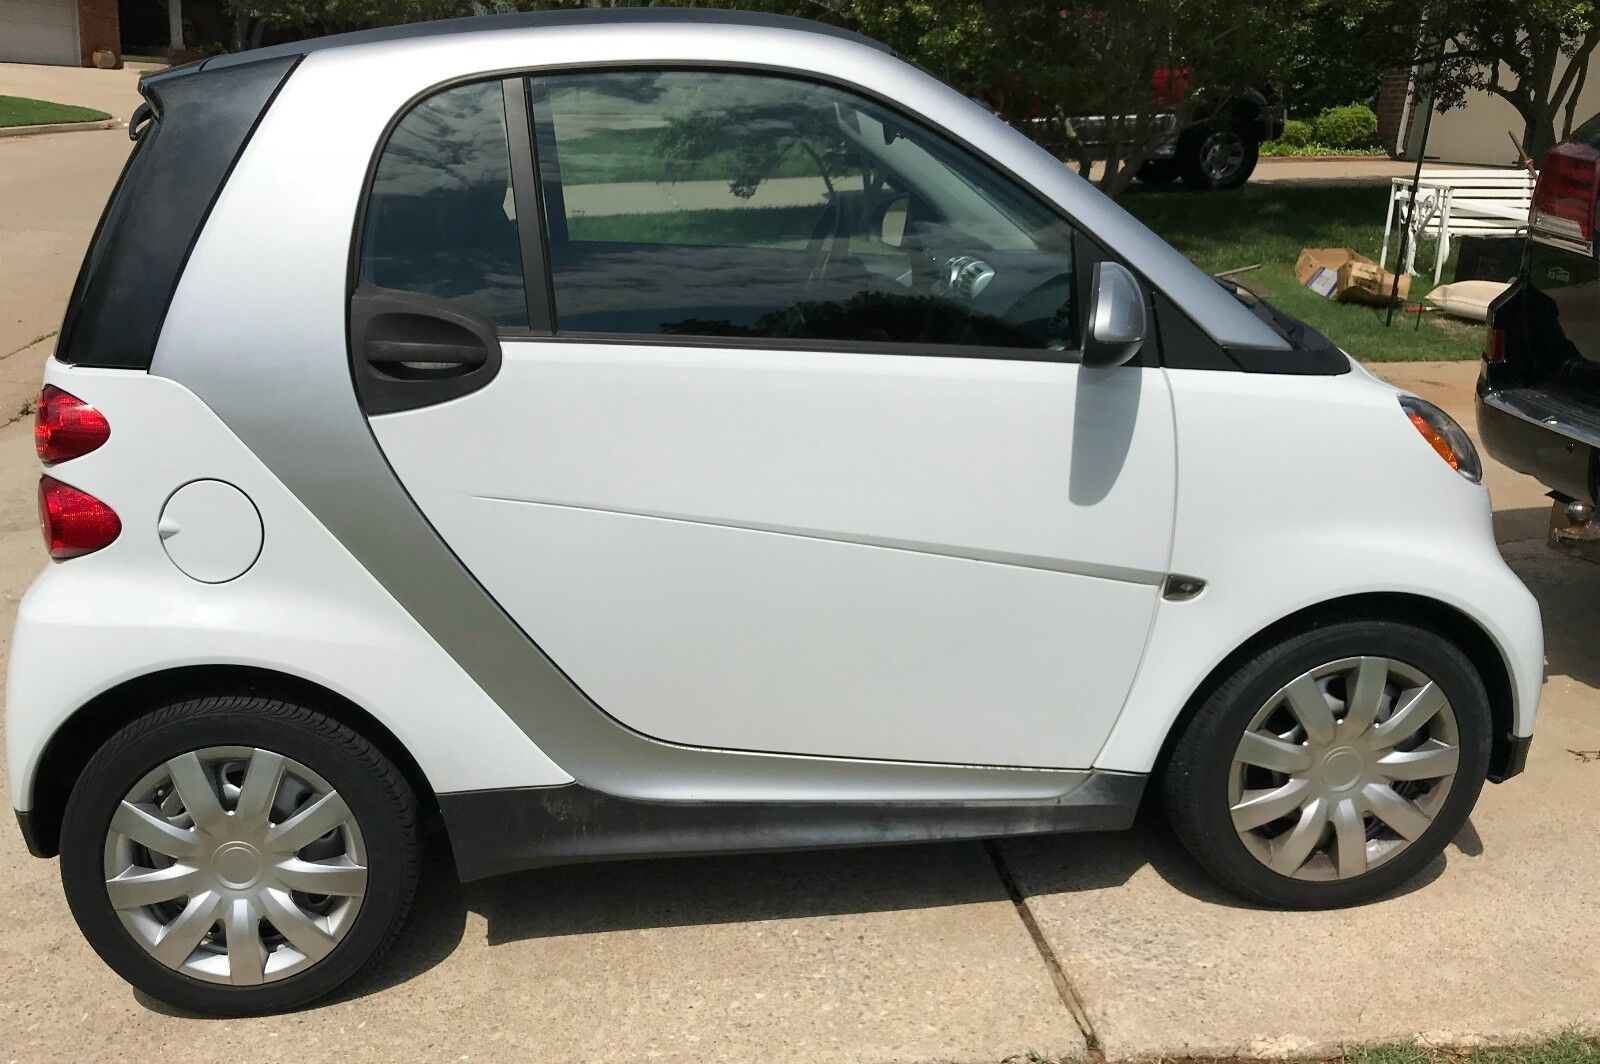 2014 Smart Fortwo LEATHER 2014 SMART FORTWO CAR LEATHER HEATED SEATS POWER WINDOWS/LOCKS LOW MILES 8,139